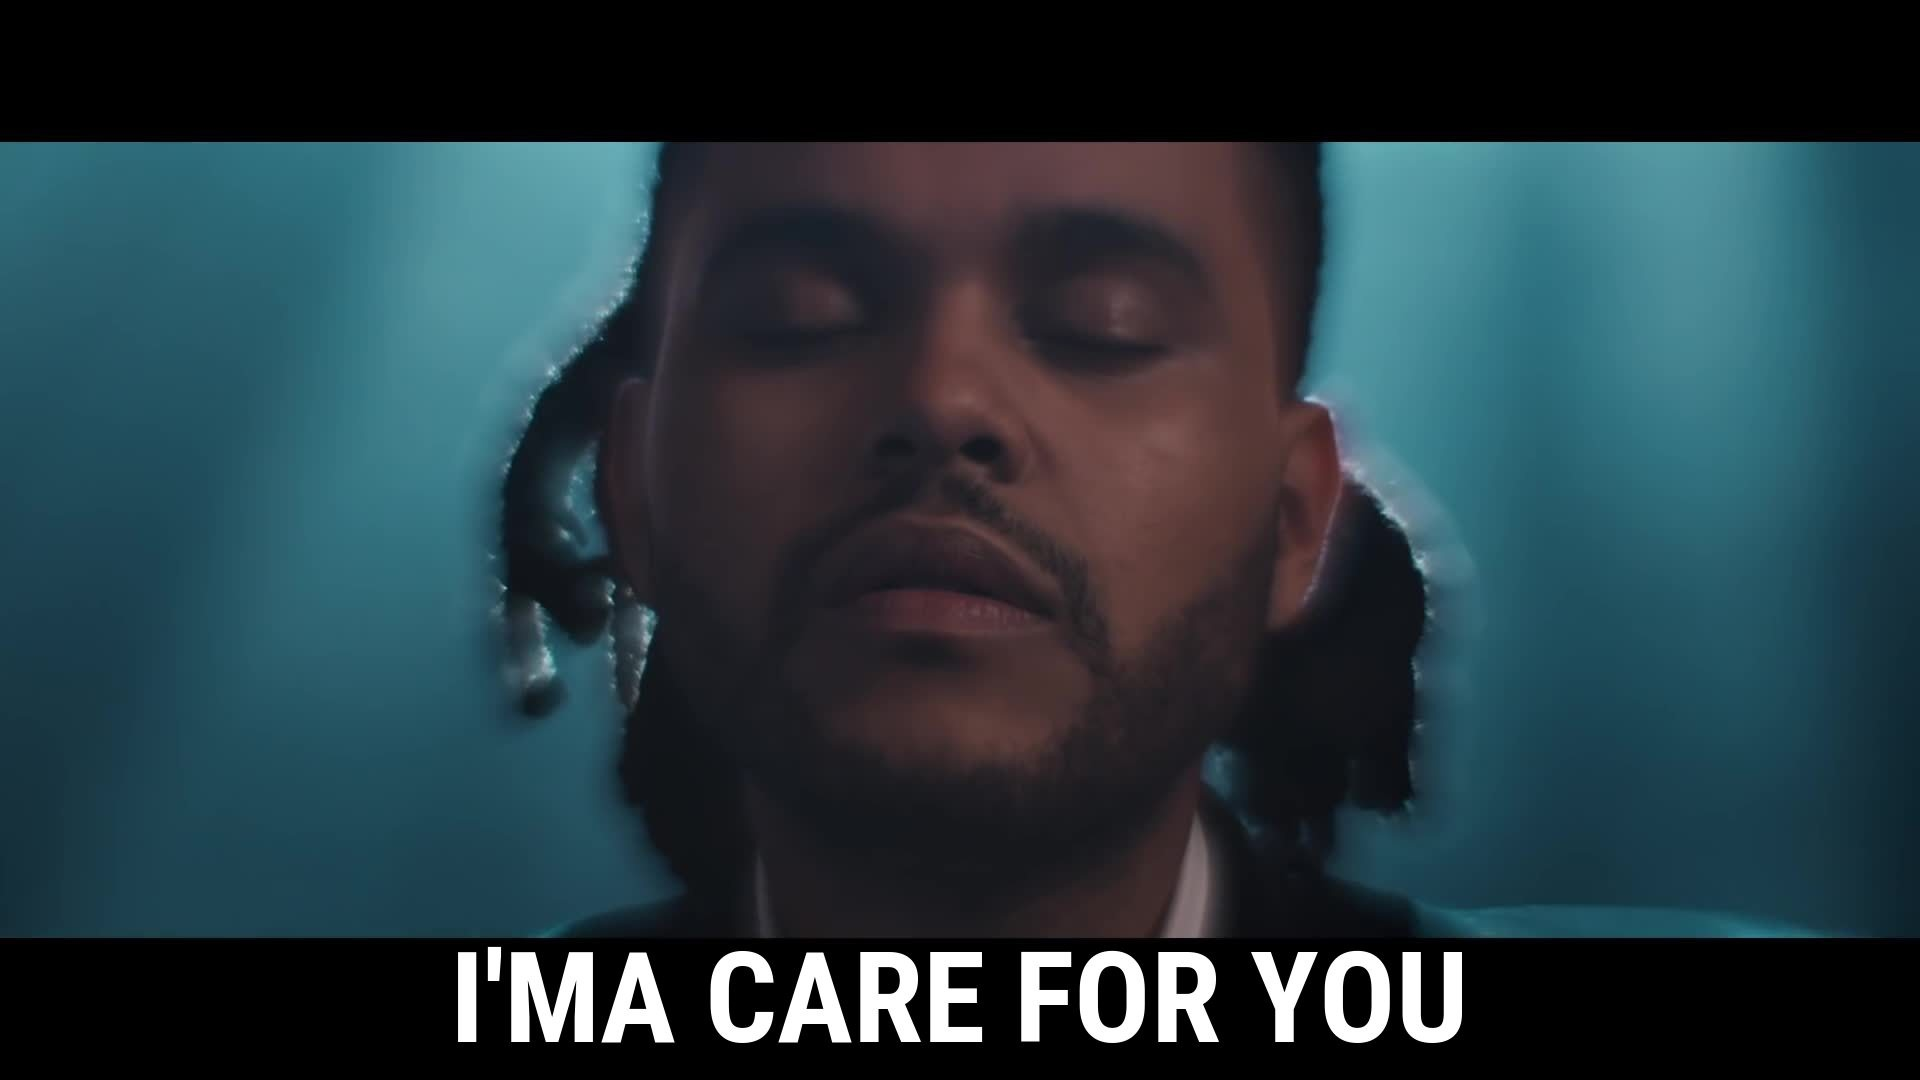 I'ma care for you / The Weeknd